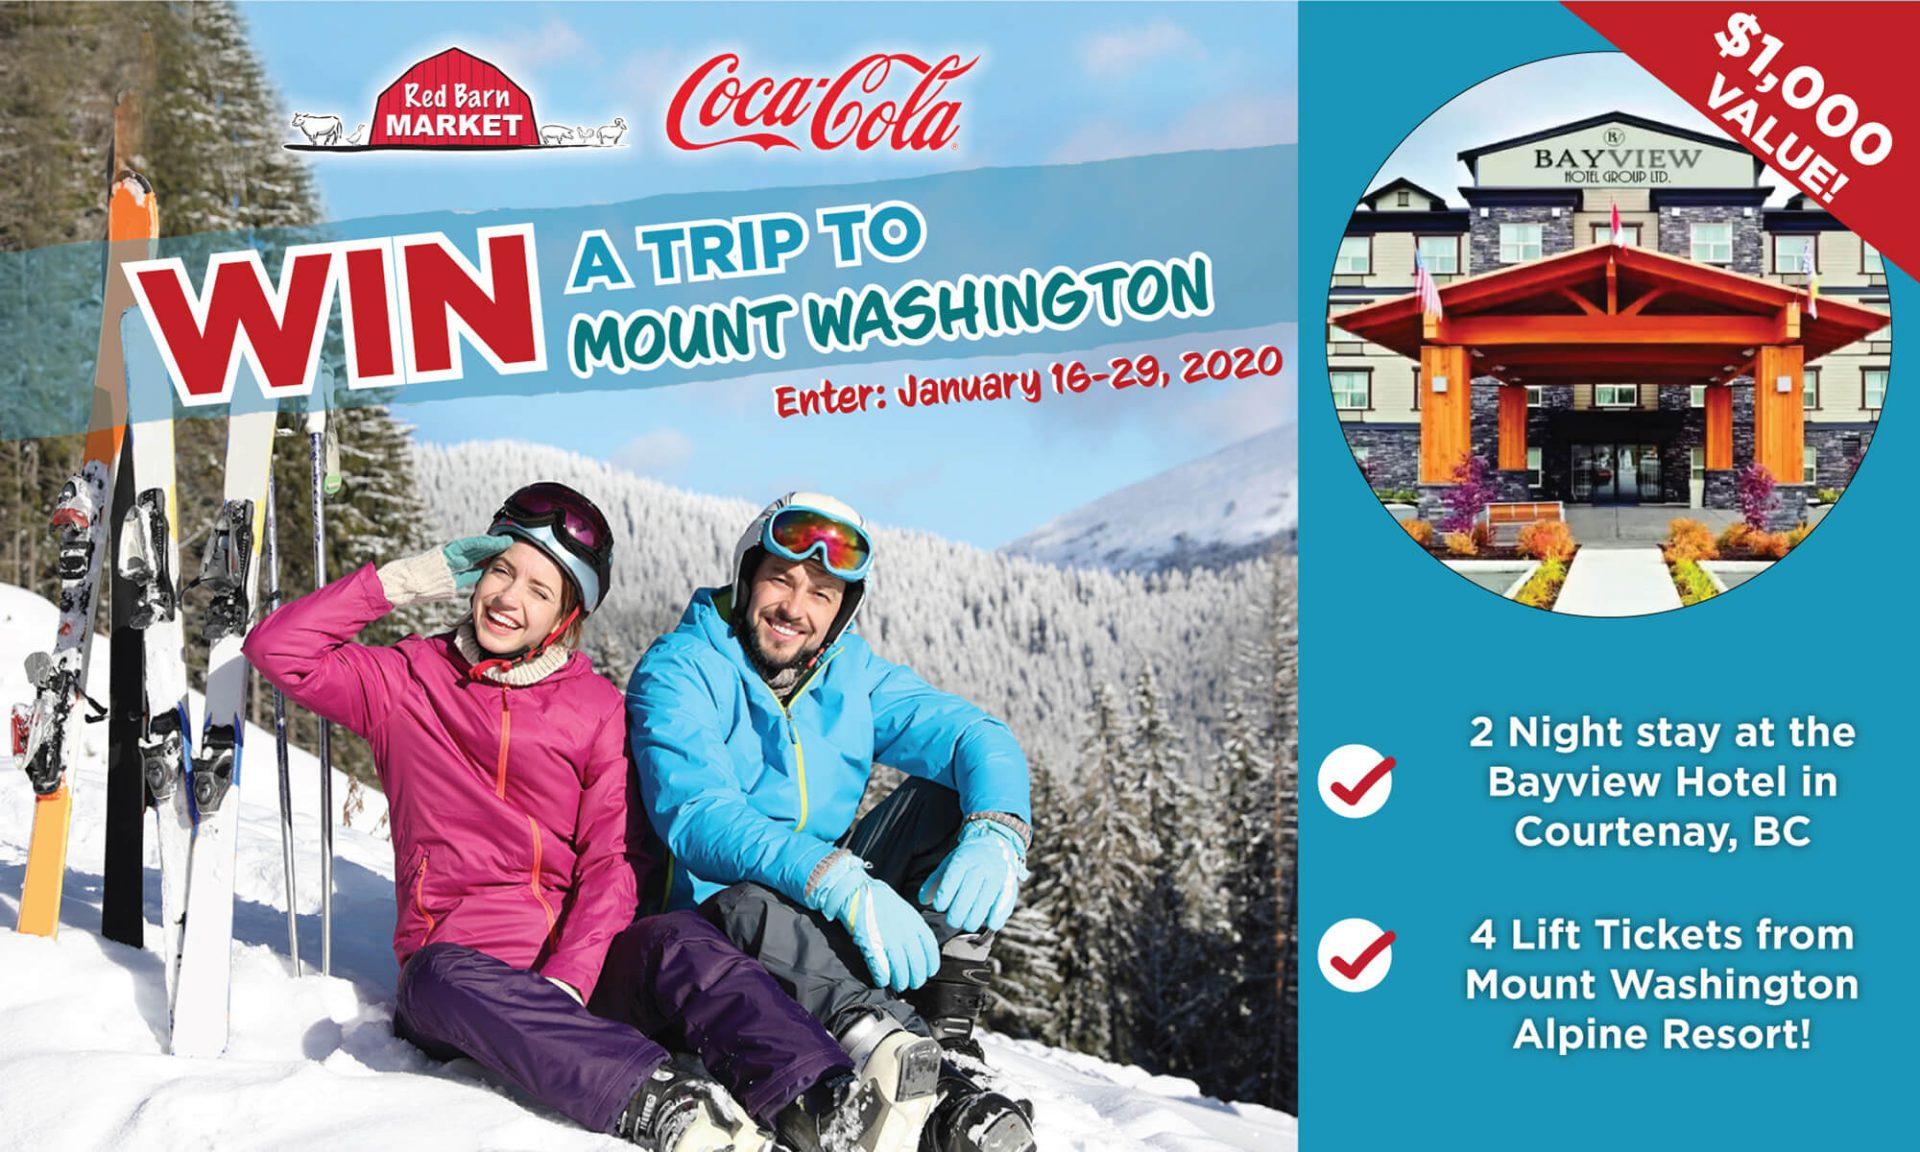 Win a trip to Mount Washington! Enter to win 4 lift tickets and 2 nights at the Bayview Hotel in Courtney, BC courtesy of Red Barn Market and Coca-Cola